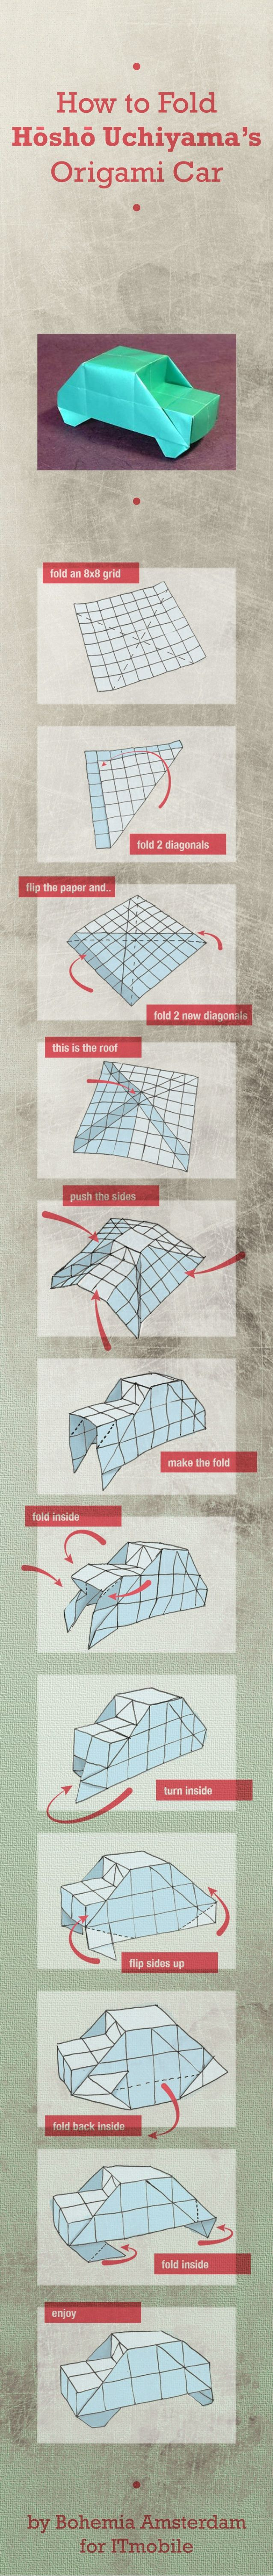 How To Fold The Famous Hosho Uchiyama 3d Paper Origami Car In 12 Star Wars Diagrams And Crease Patterns Starwarigami Steps